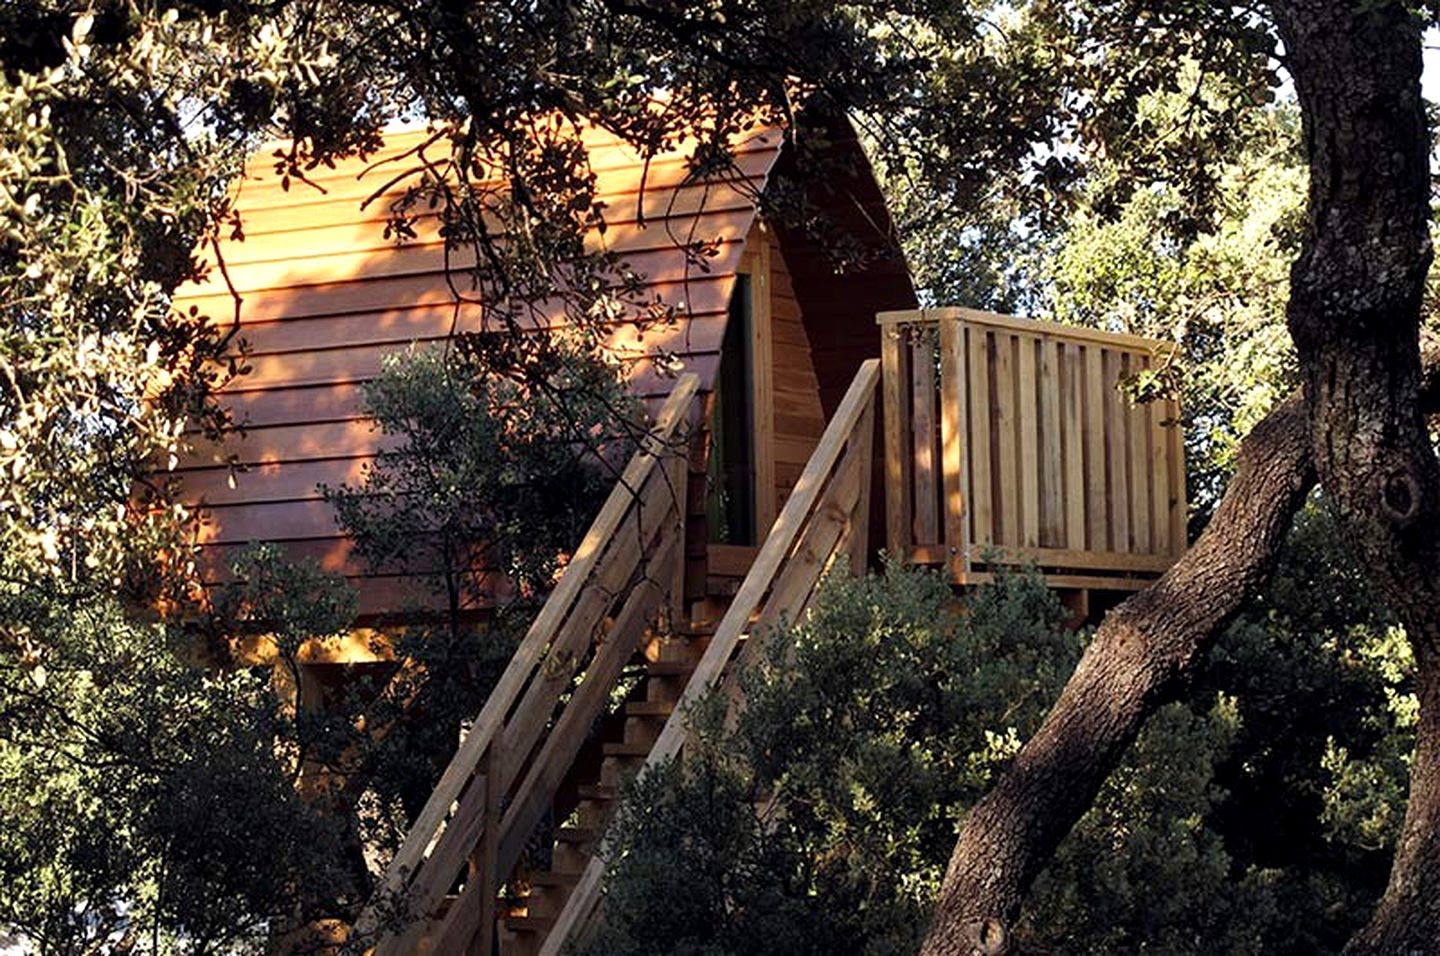 Tree Houses (Madrid, Madrid, Spain)